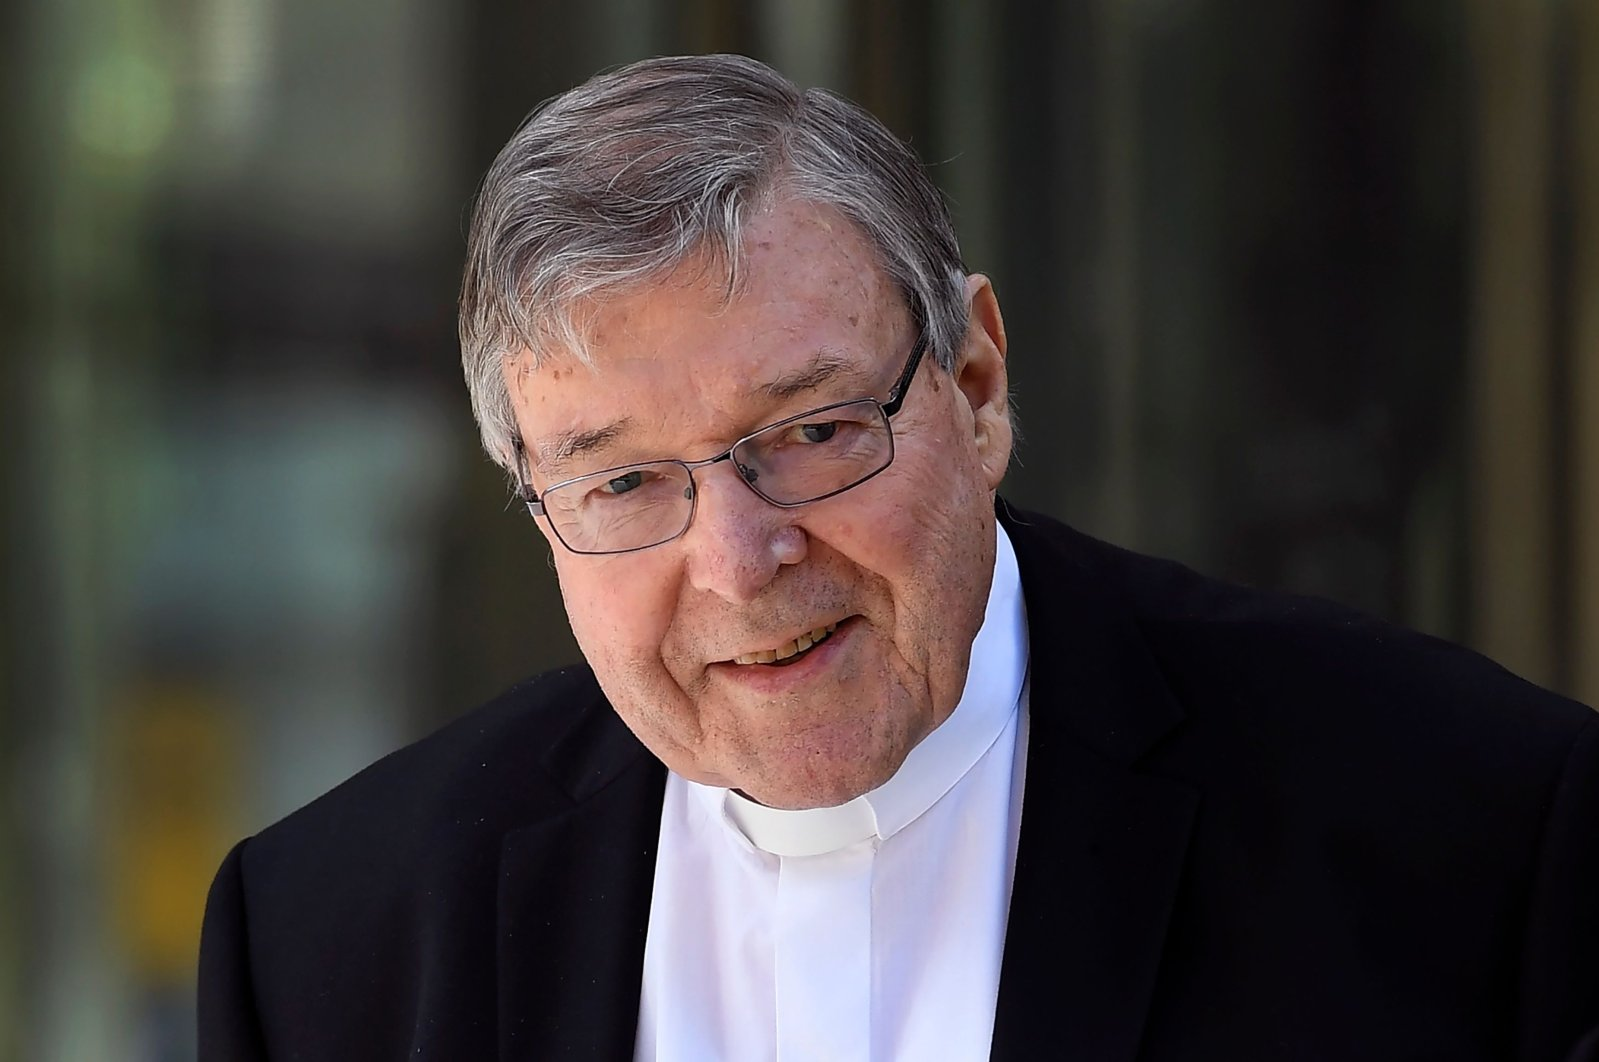 This Dec. 10, 2018, file photo shows Cardinal George Pell walking to a car in Melbourne, Australia. (AFP Photo)